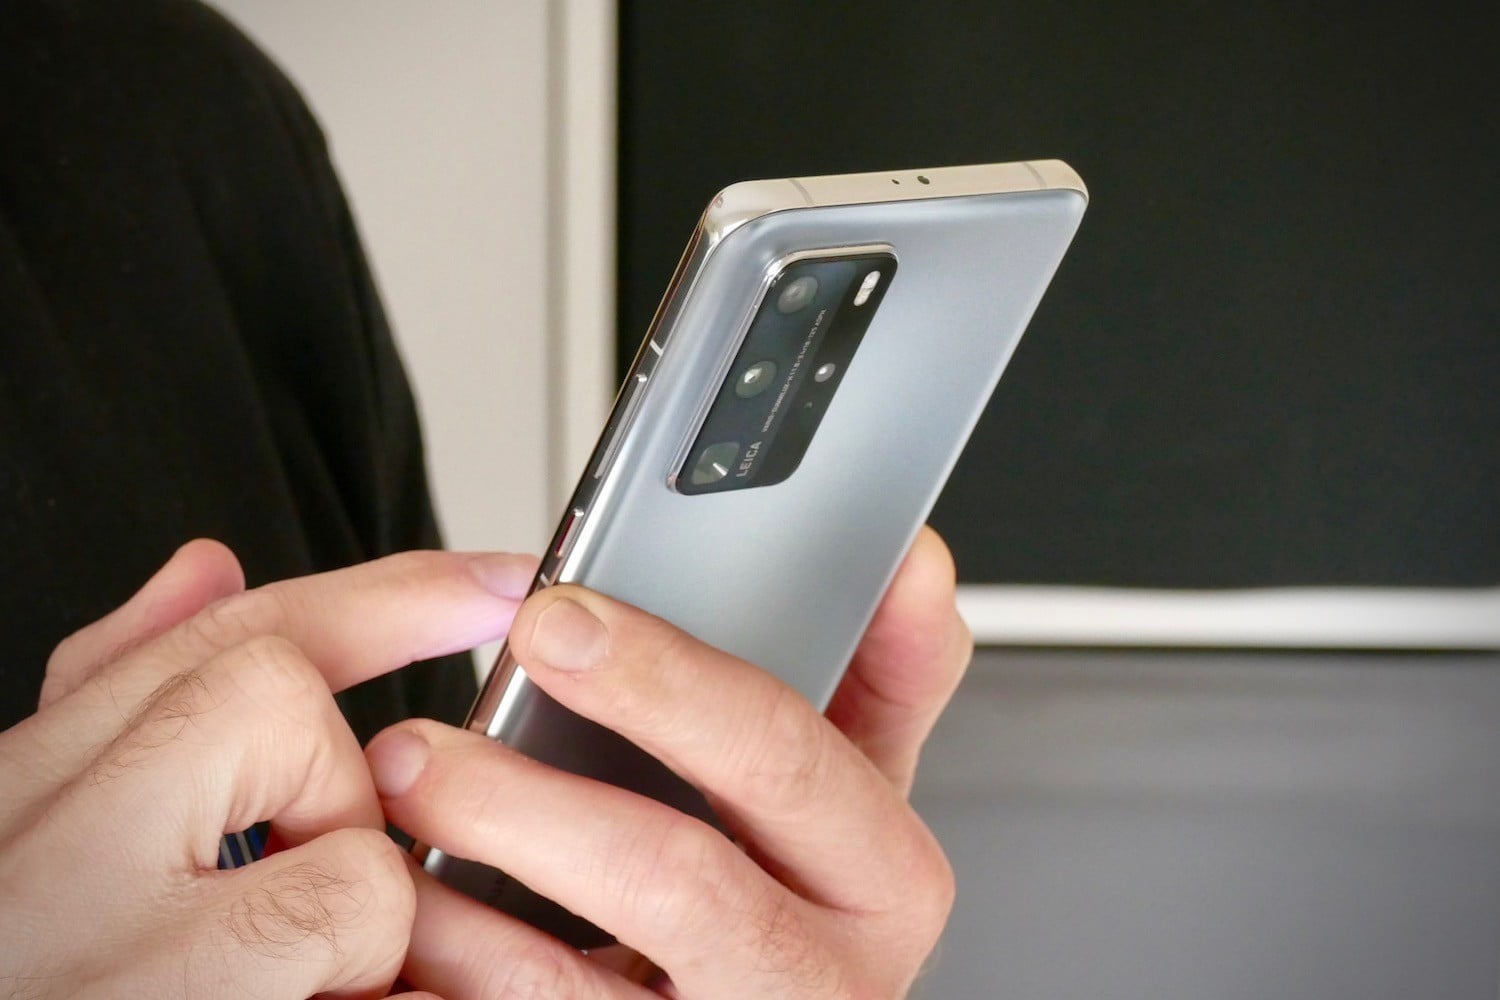 Good phone design is a requirement, not a luxury